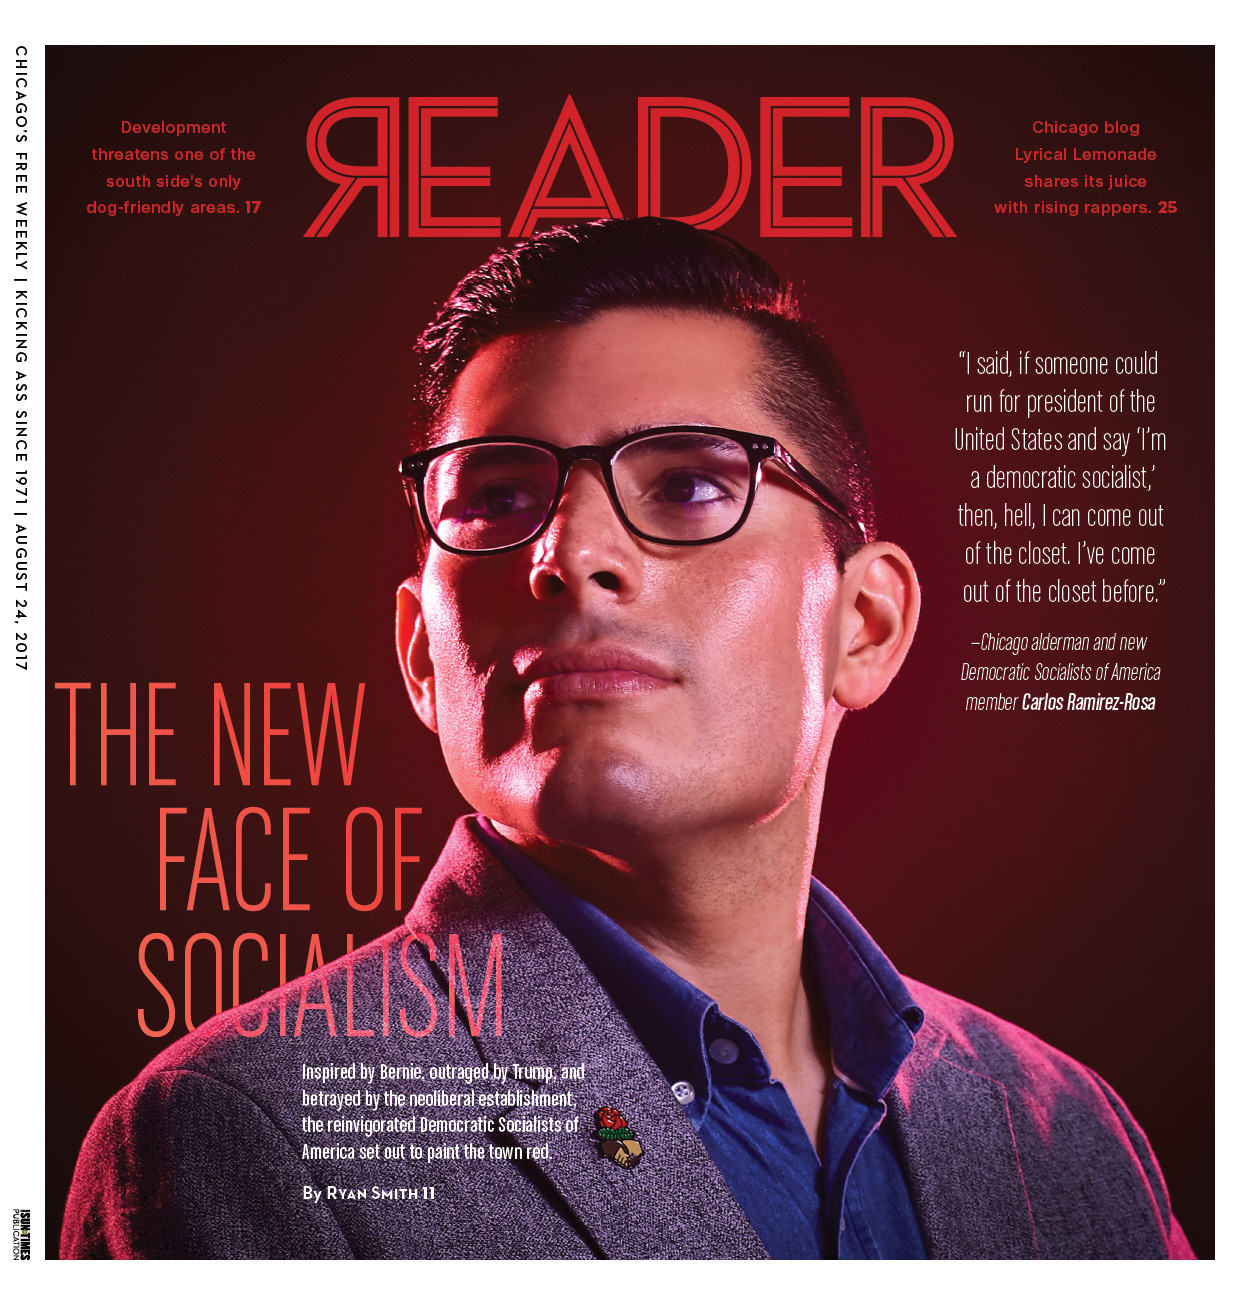 The cover of last week's <i>Reader</i>